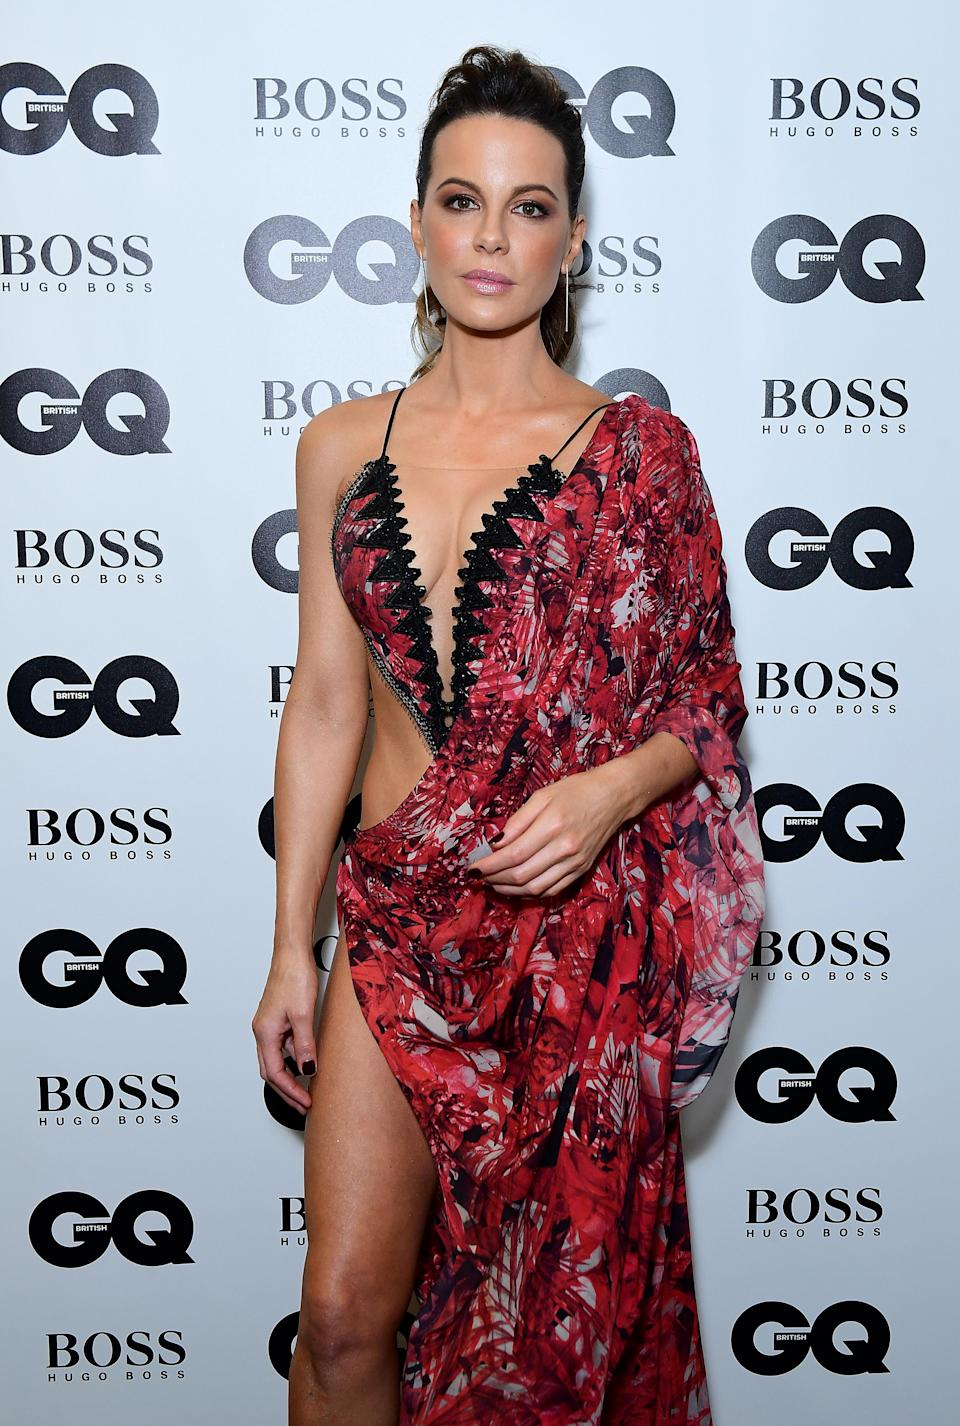 <p>The actress is recovering after suffering a ruptured ovarian cyst.</p>